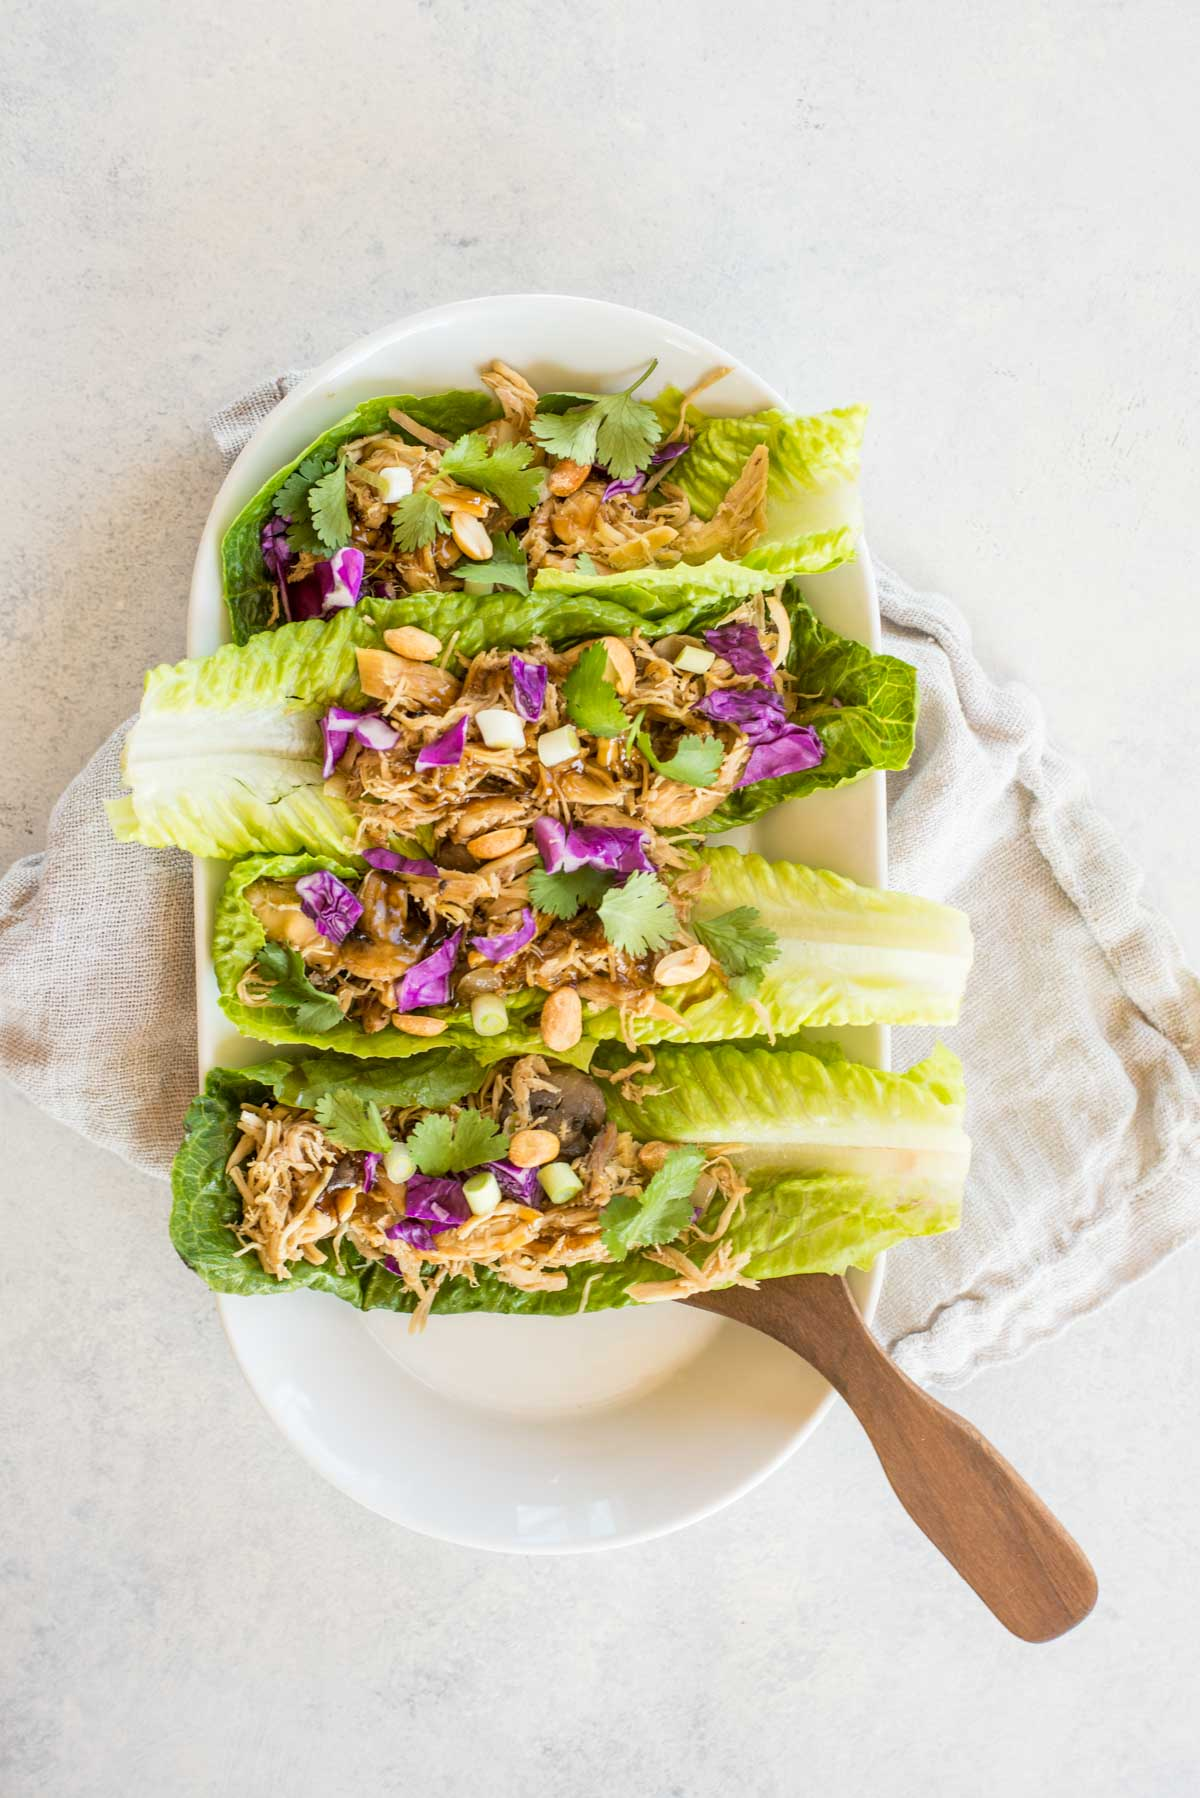 This recipe takes healthy to the next level with flavorful delicious Asian Chicken Lettuce Wraps.